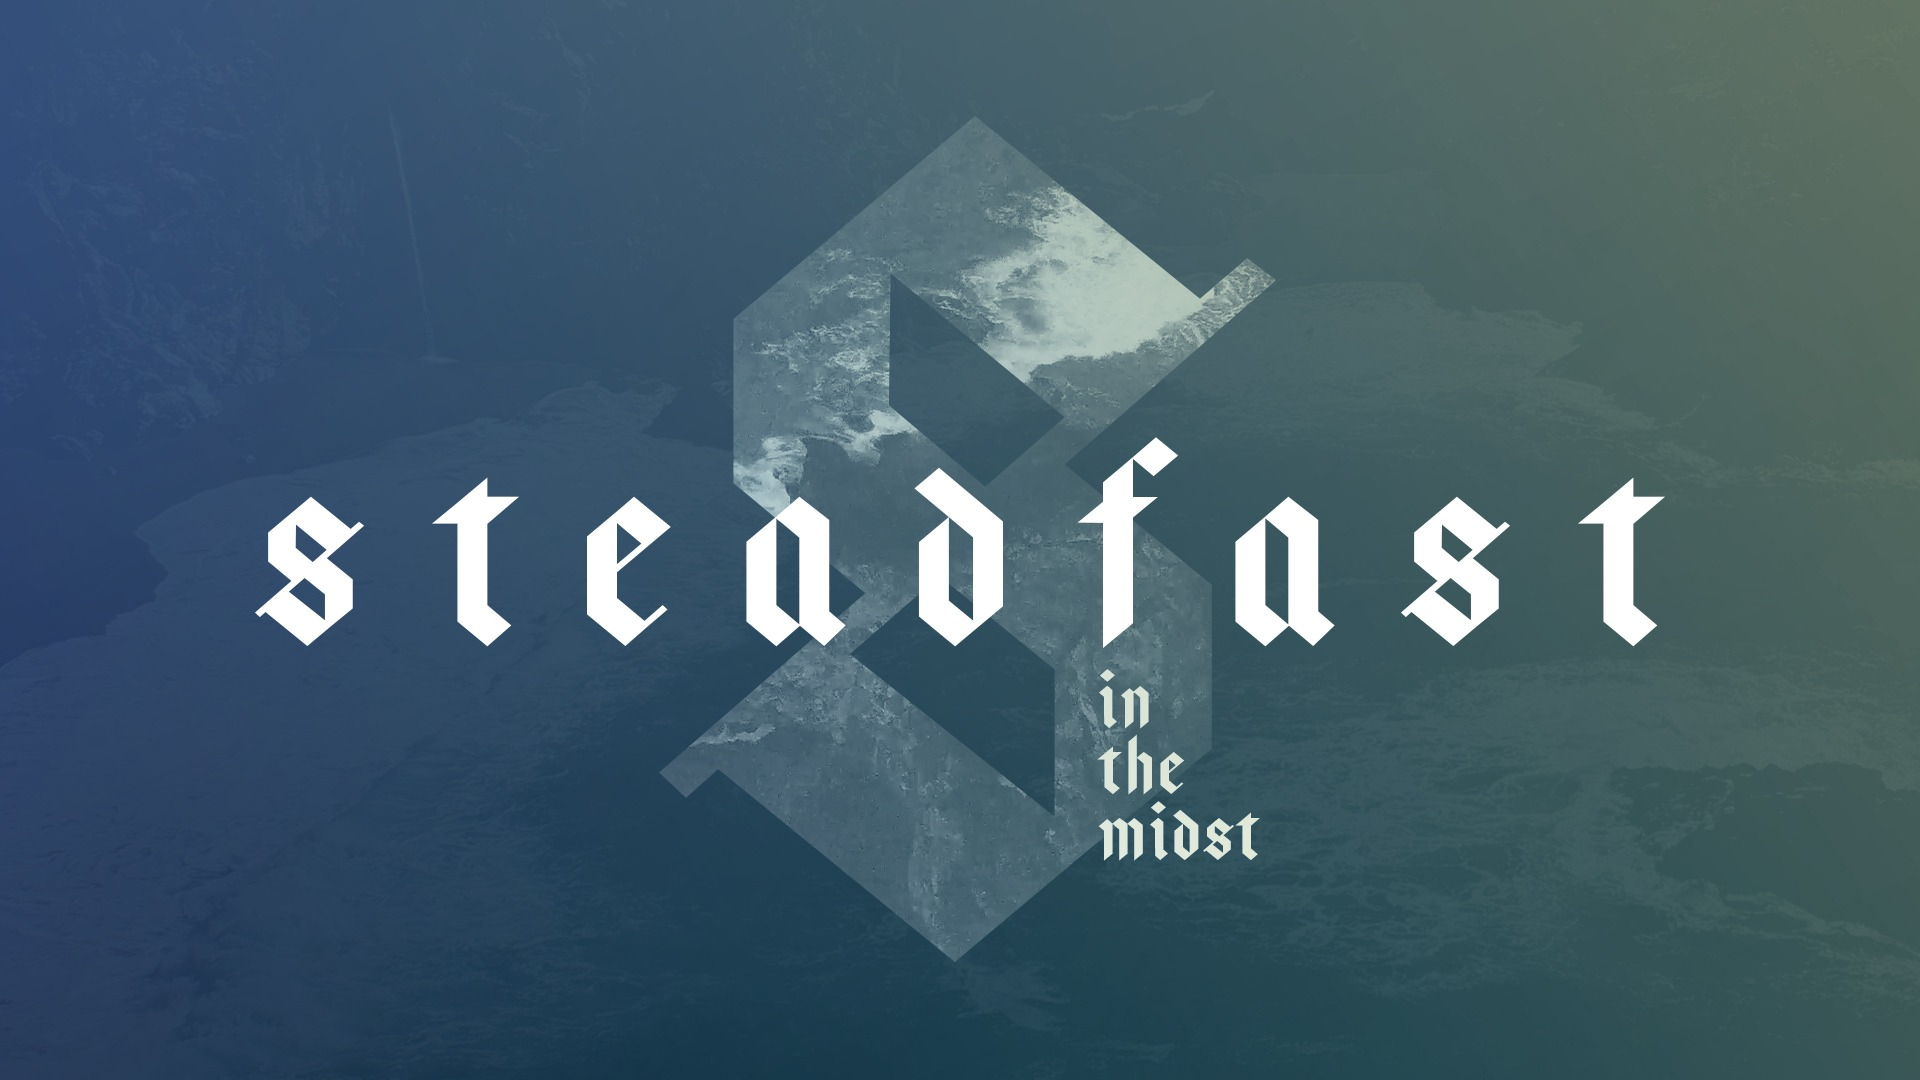 Steadfast in the Midst of Fear